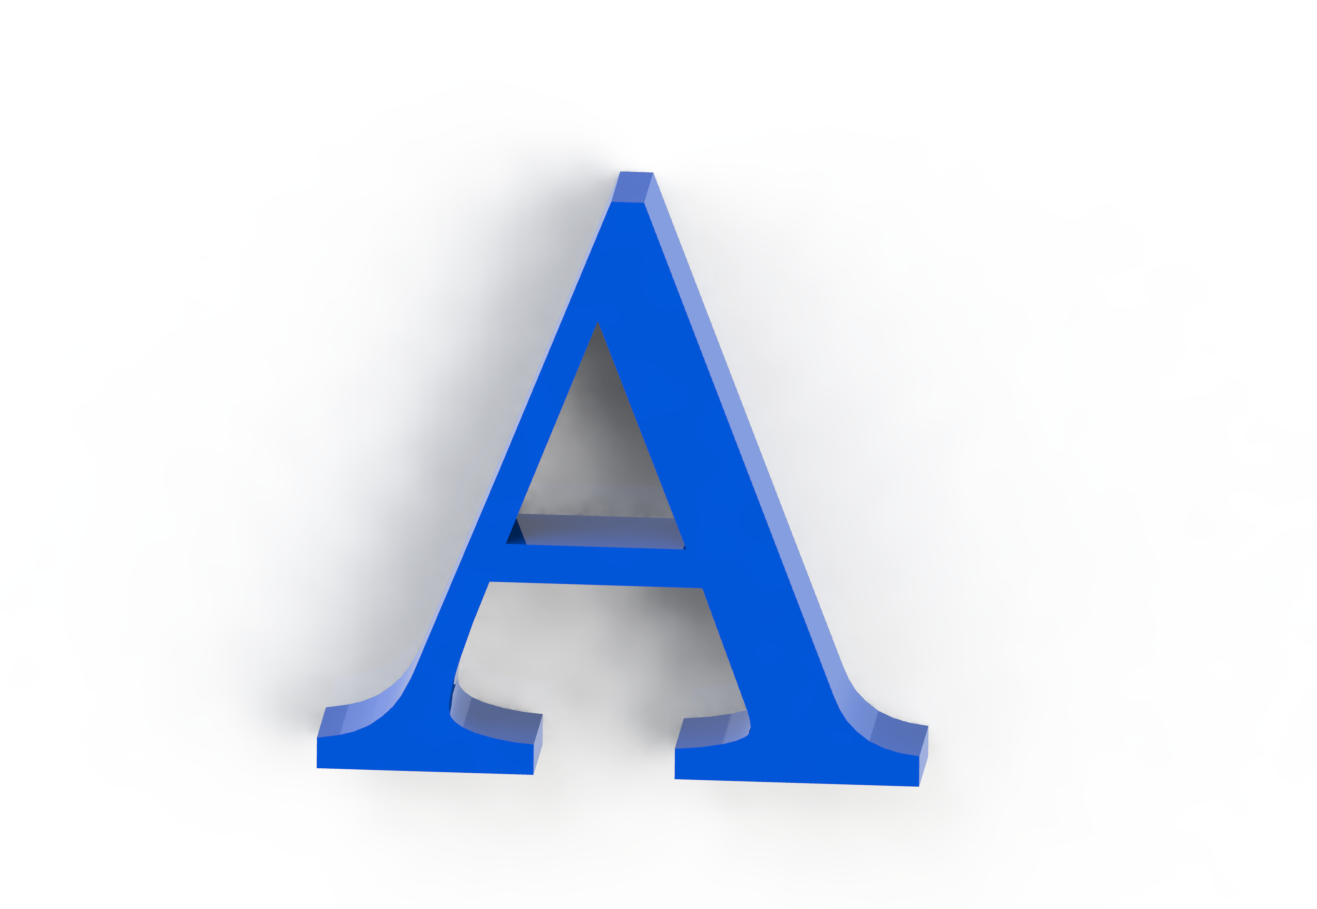 a3.png Download free STL file Letras / abecedario completo • Object to 3D print, Lubal